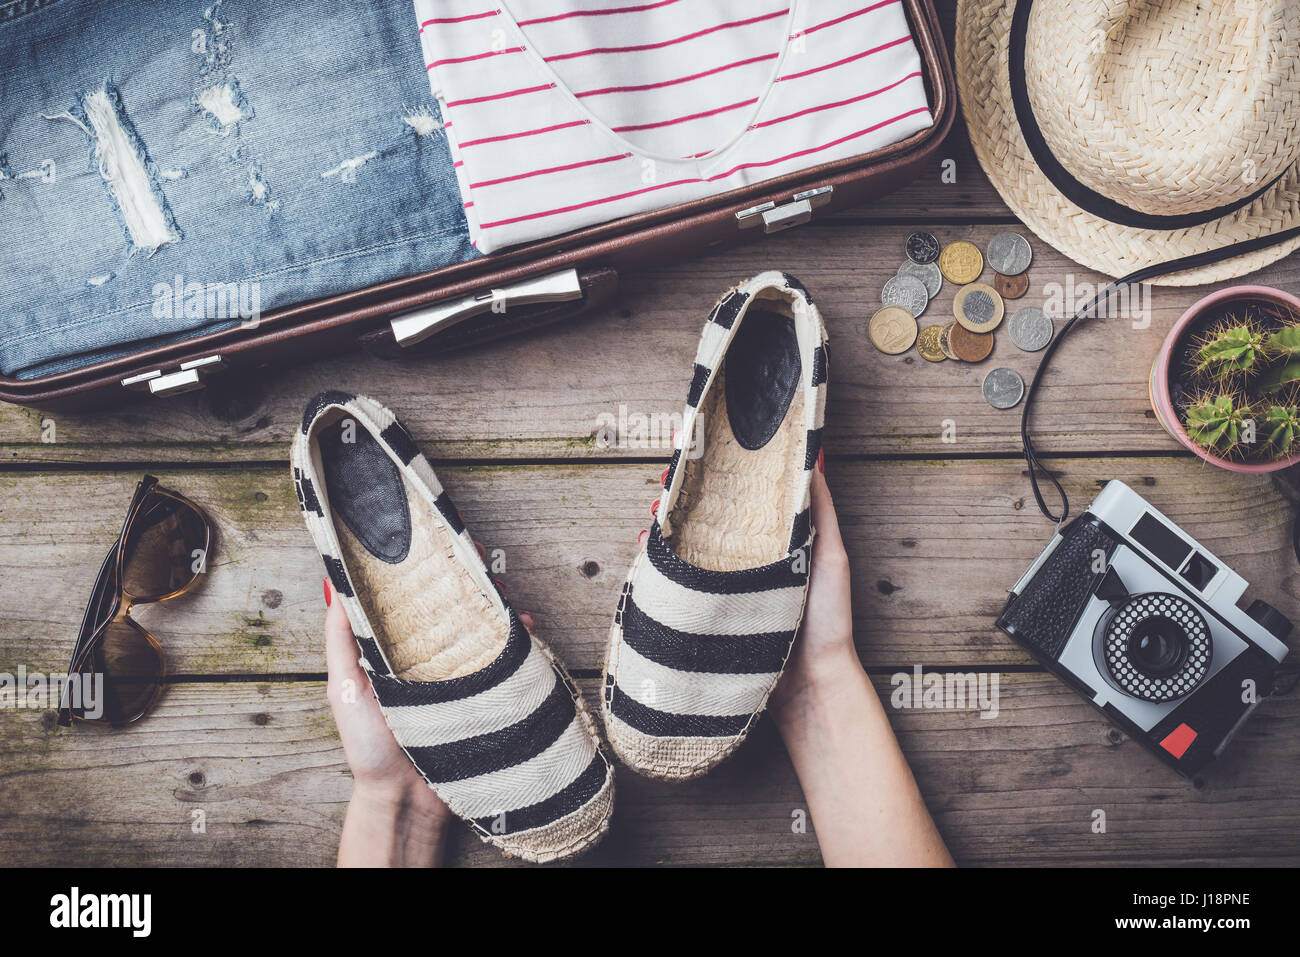 Travel preparations concept with suitcase, clothes and accessories on an old wooden table. Top view - Stock Image